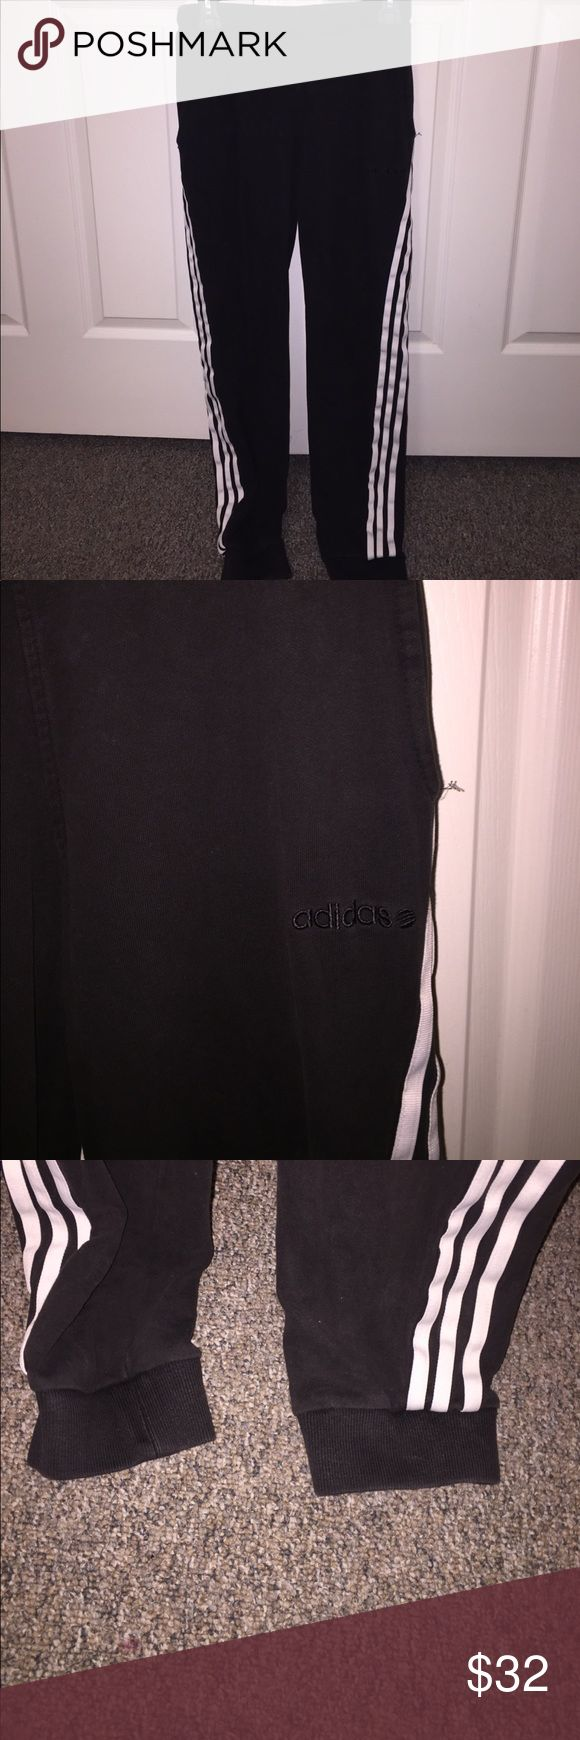 Men's Adidas Slim Fit Cuffed Joggers 9/10 condition, small bleach stain on bottom right pant leg. adidas Pants Sweatpants & Joggers